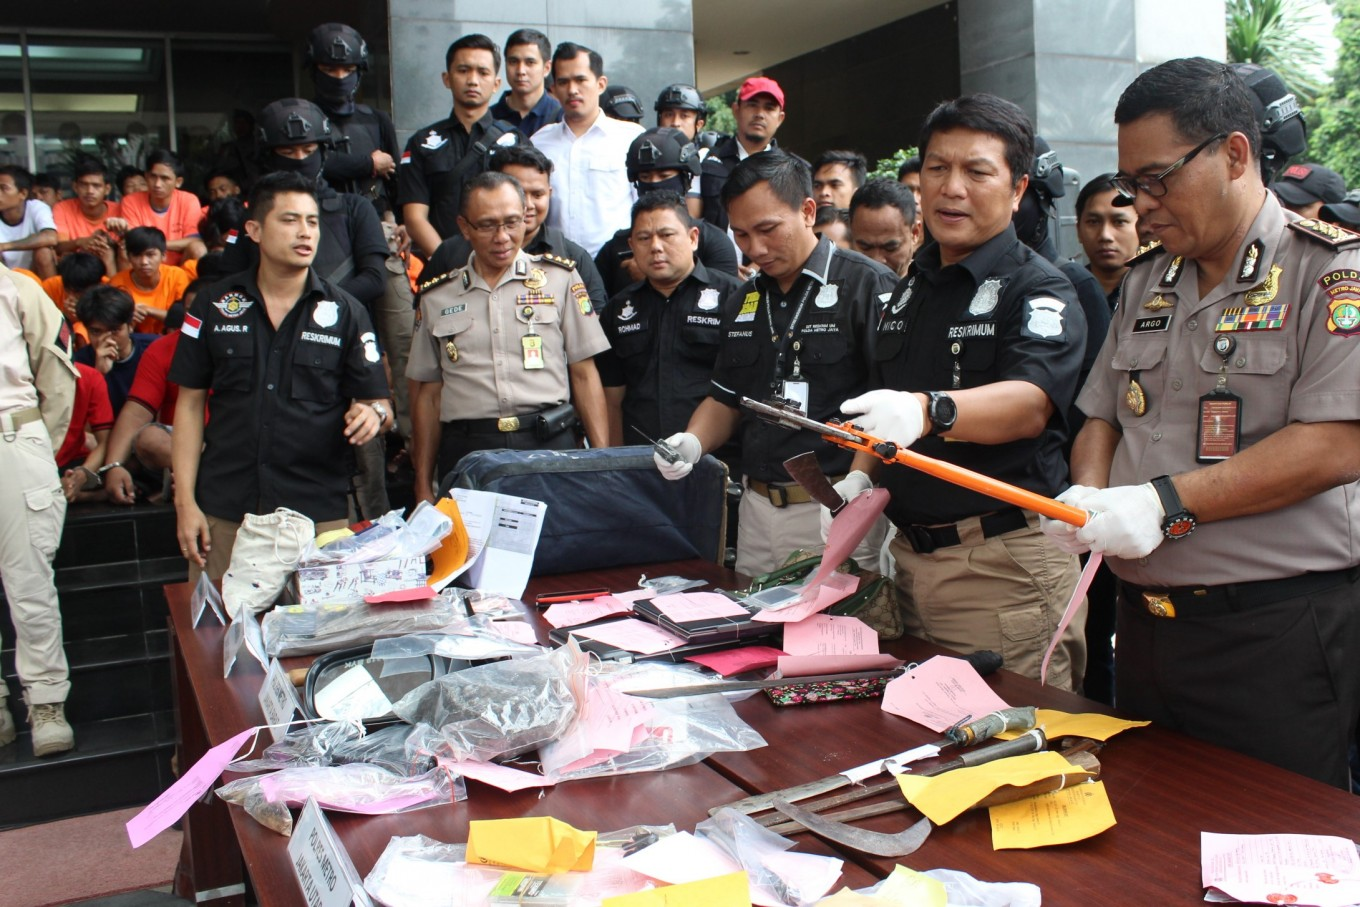 Former Jakarta Police chief named treason suspect